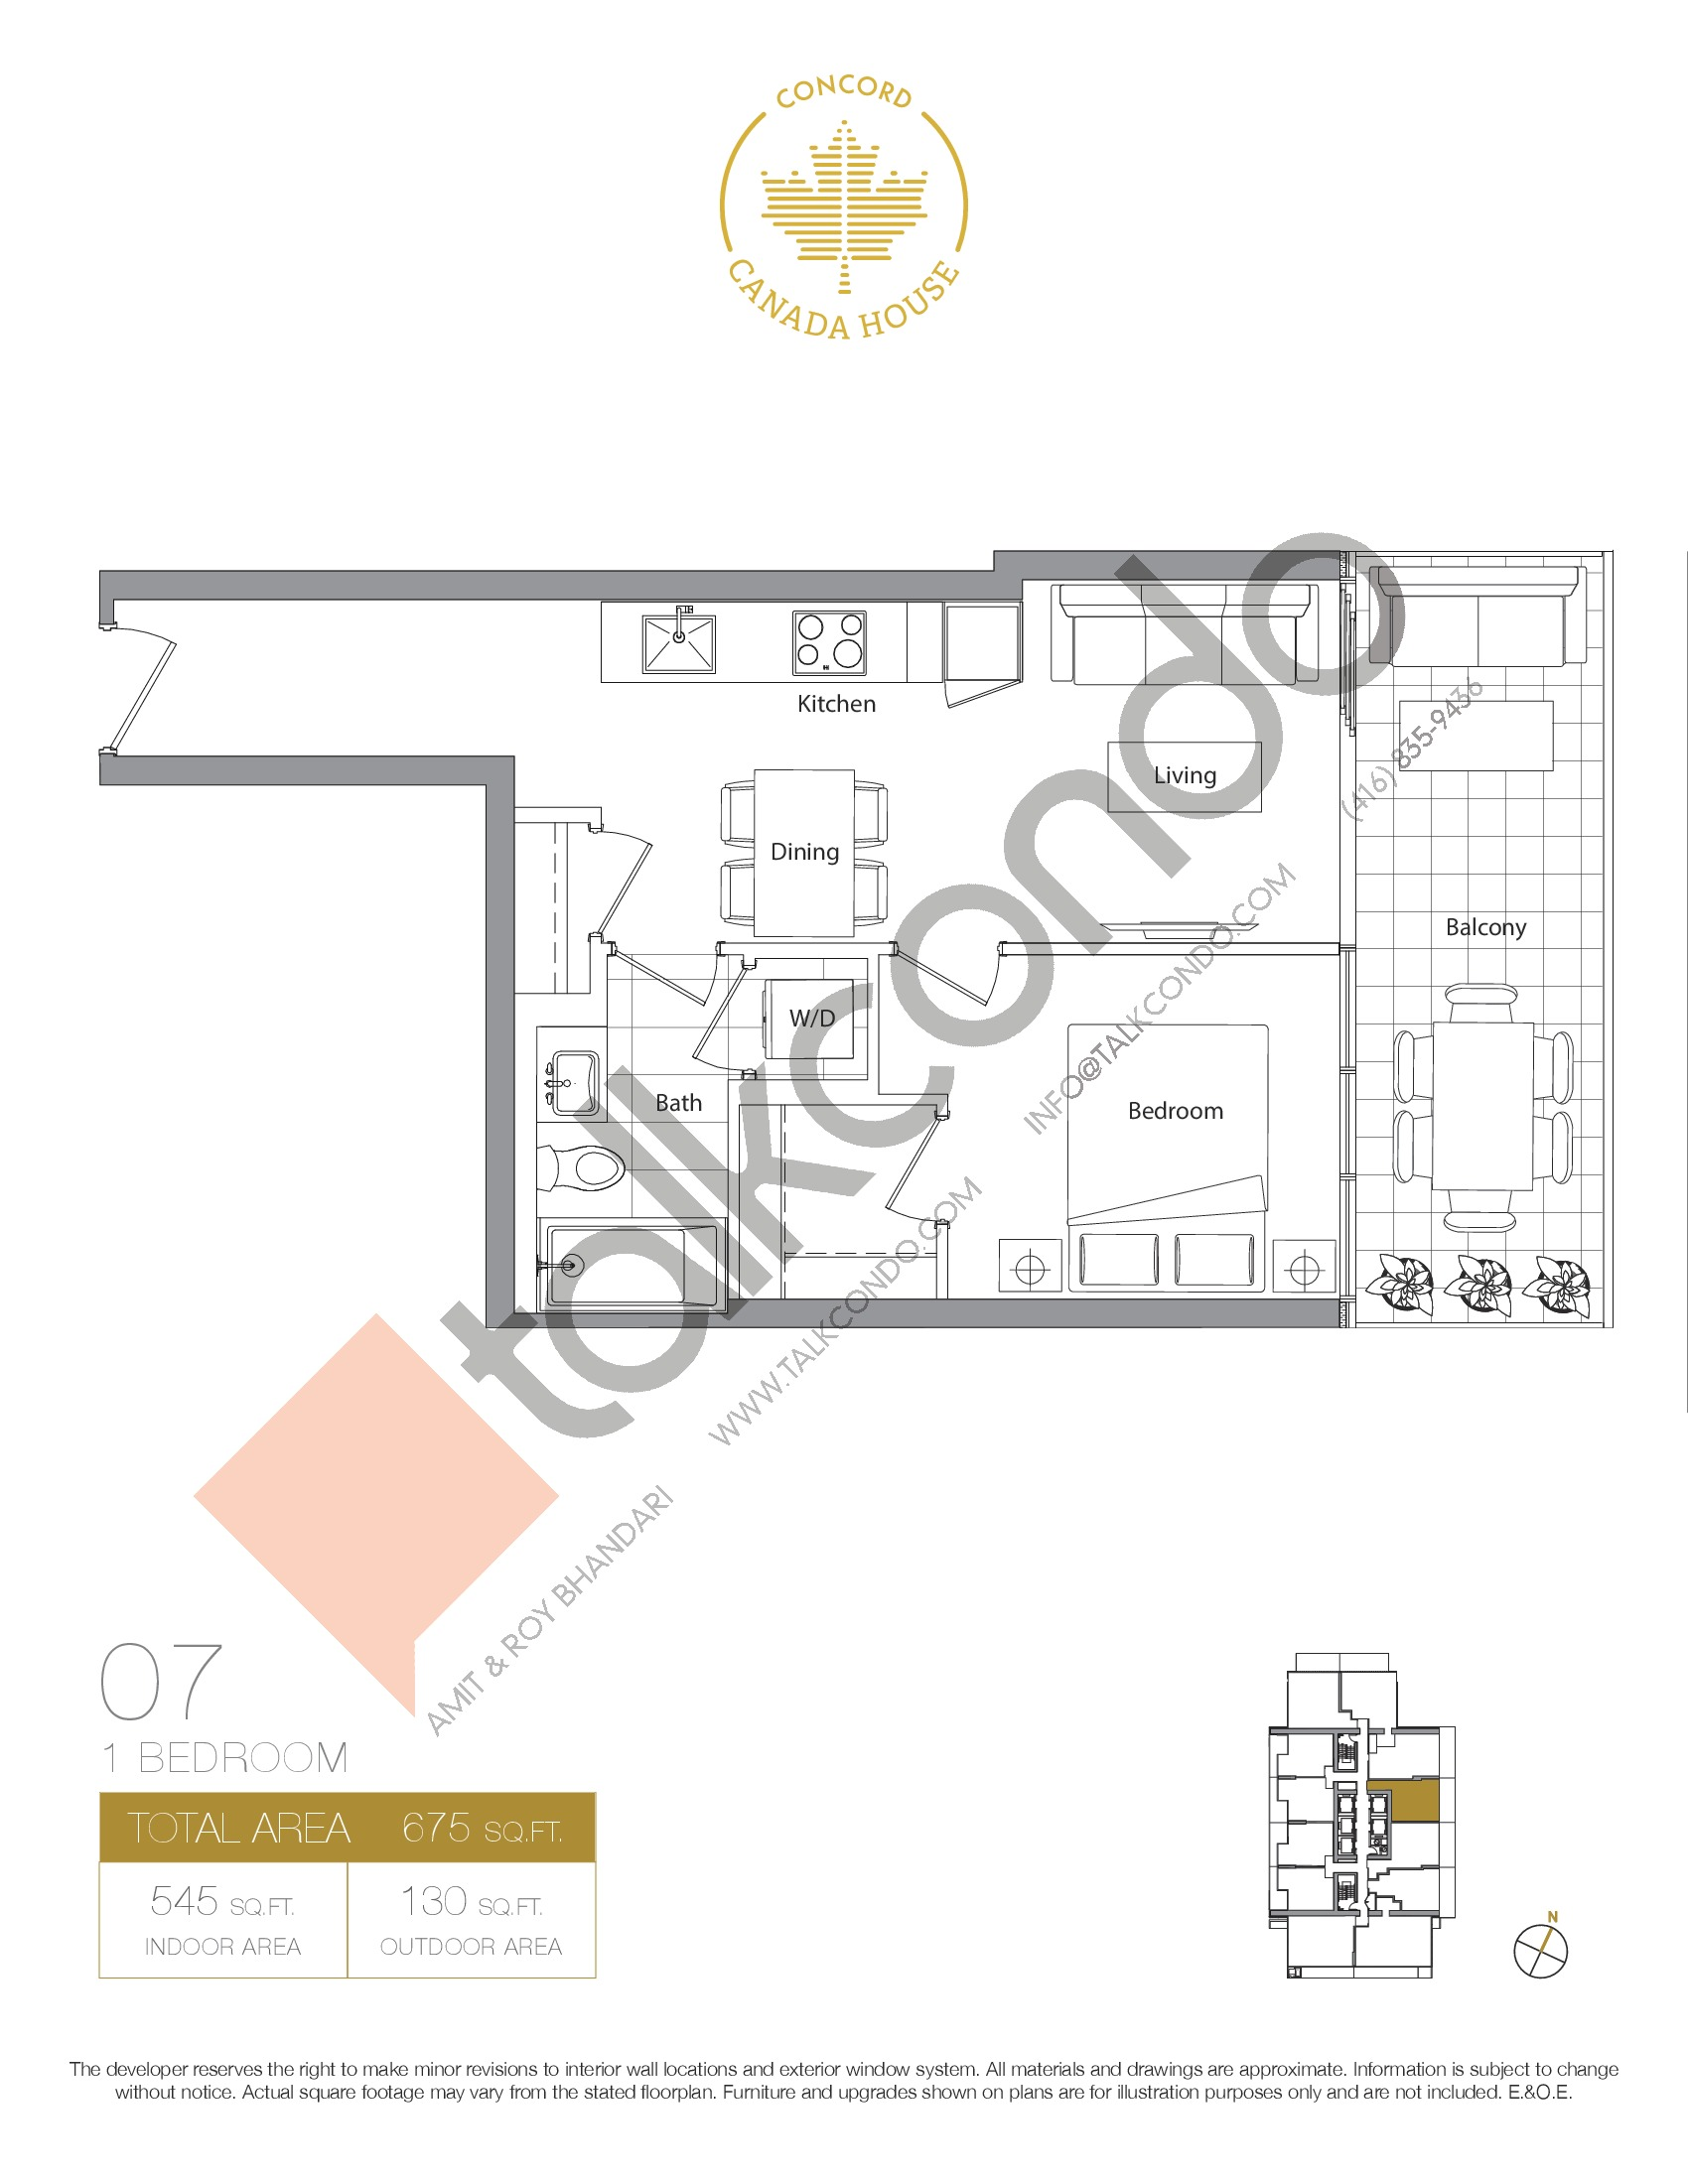 07 - West Tower Floor Plan at Concord Canada House Condos - 545 sq.ft